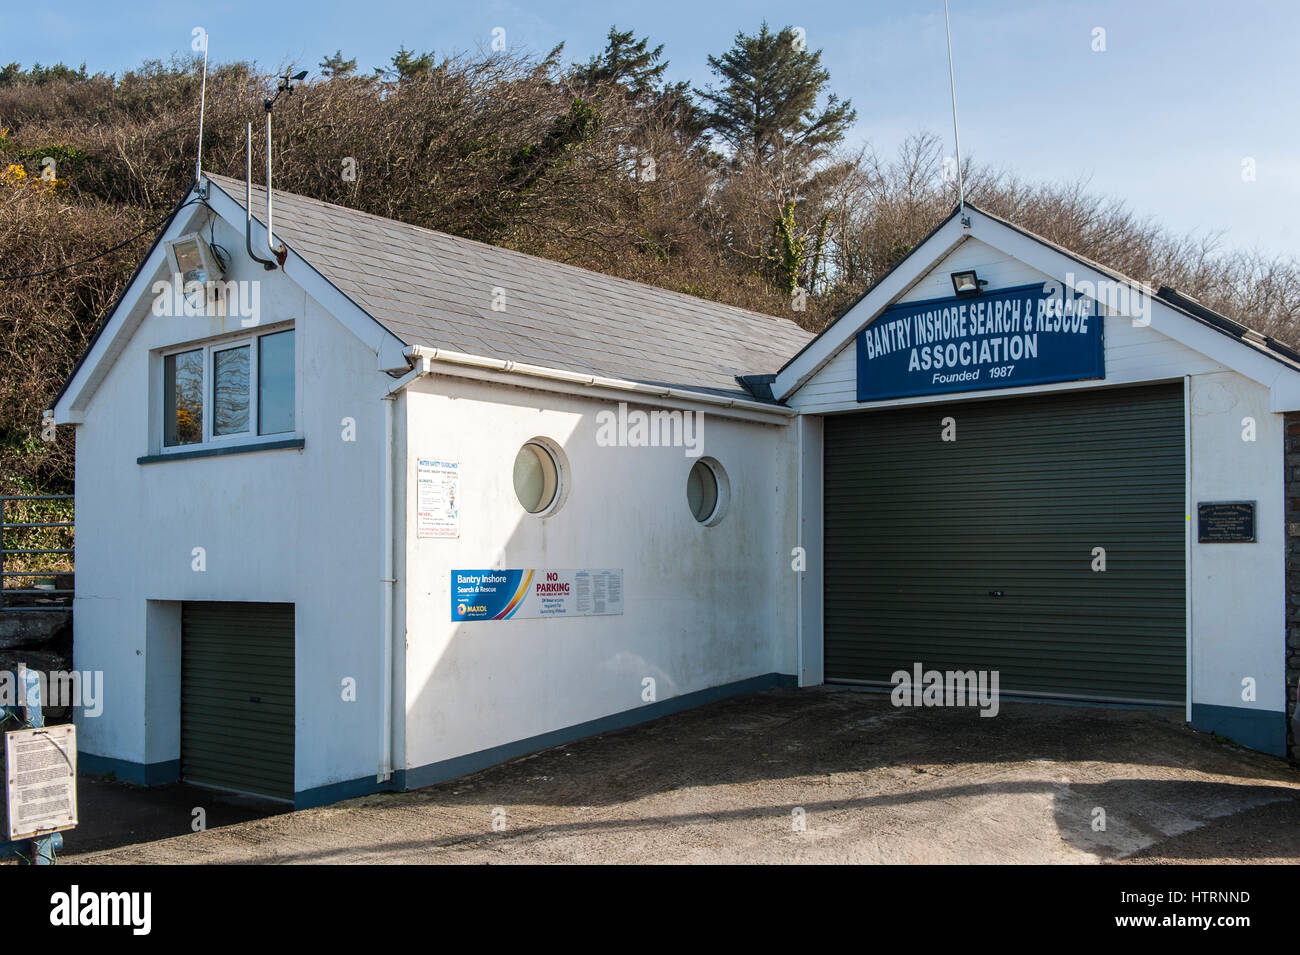 Bantry Inshore Search & Rescue Association building in Bantry, West Cork, Ireland with copy space. - Stock Image